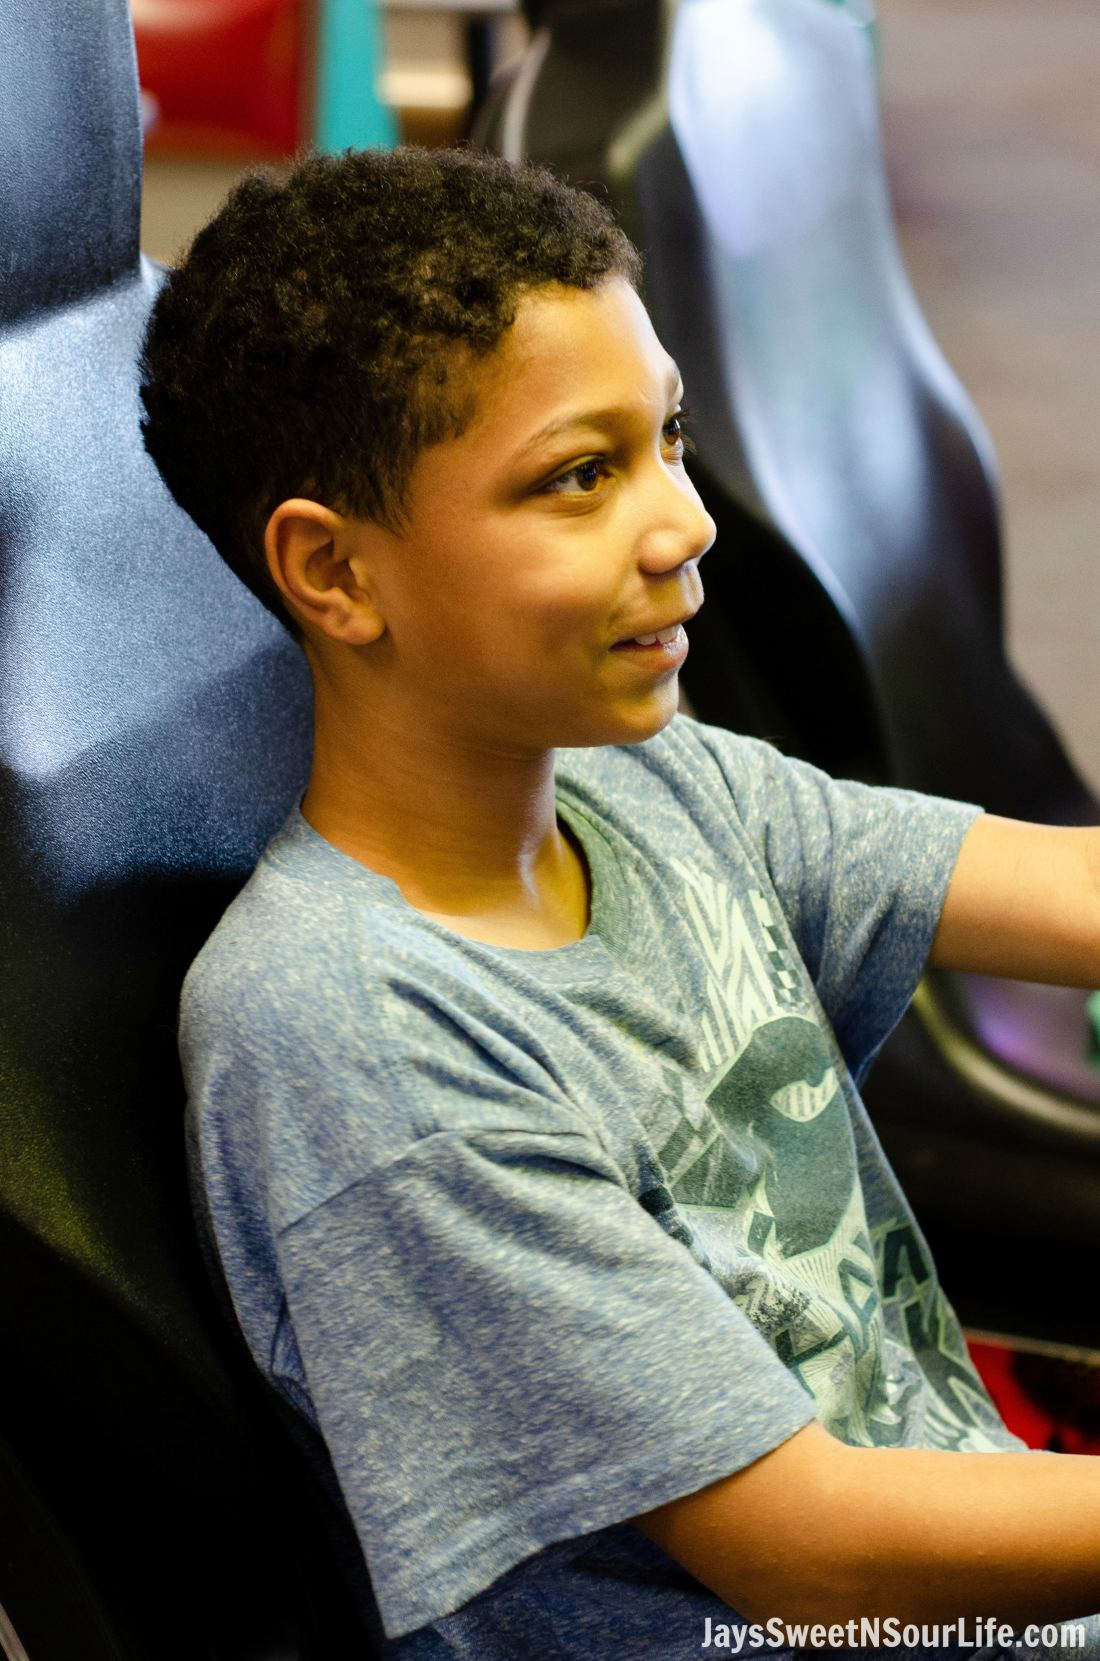 African american boy playing racing game at Chuck e cheeses VIP birthday party. Book your party today and have guests enjoy 2 hours of unlimited game play.